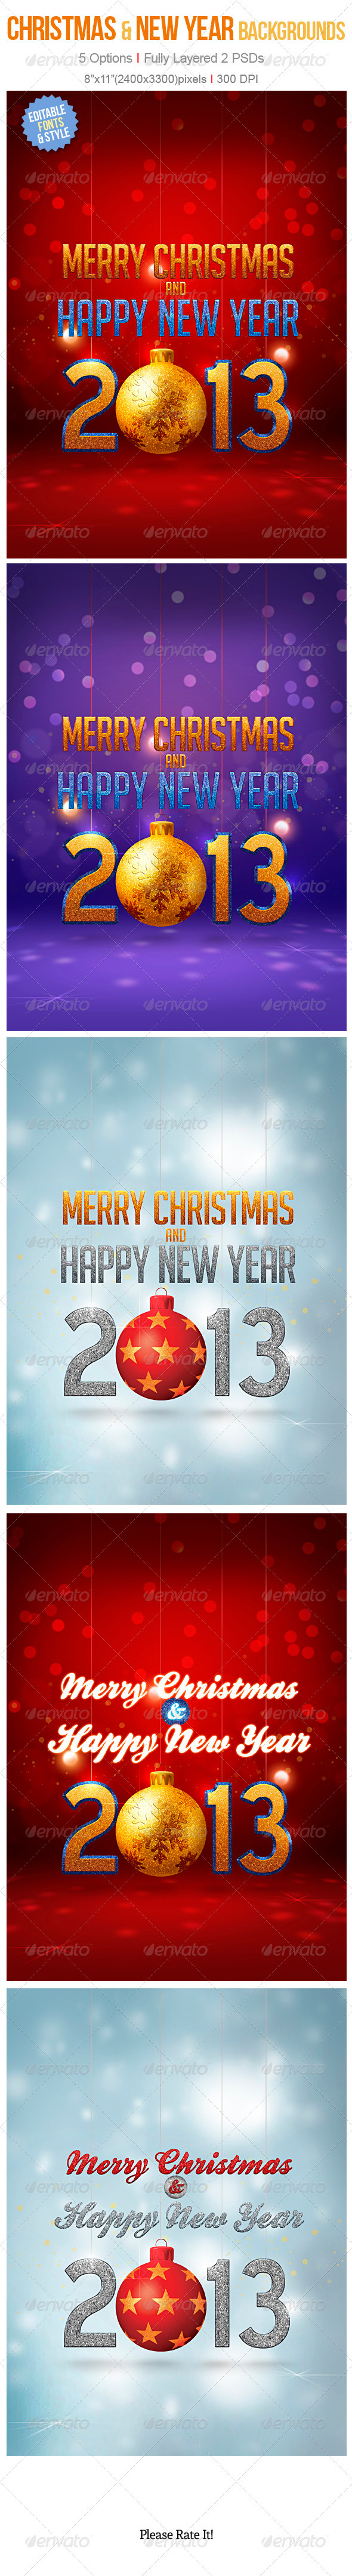 GraphicRiver Christmas & New Year Backgrounds